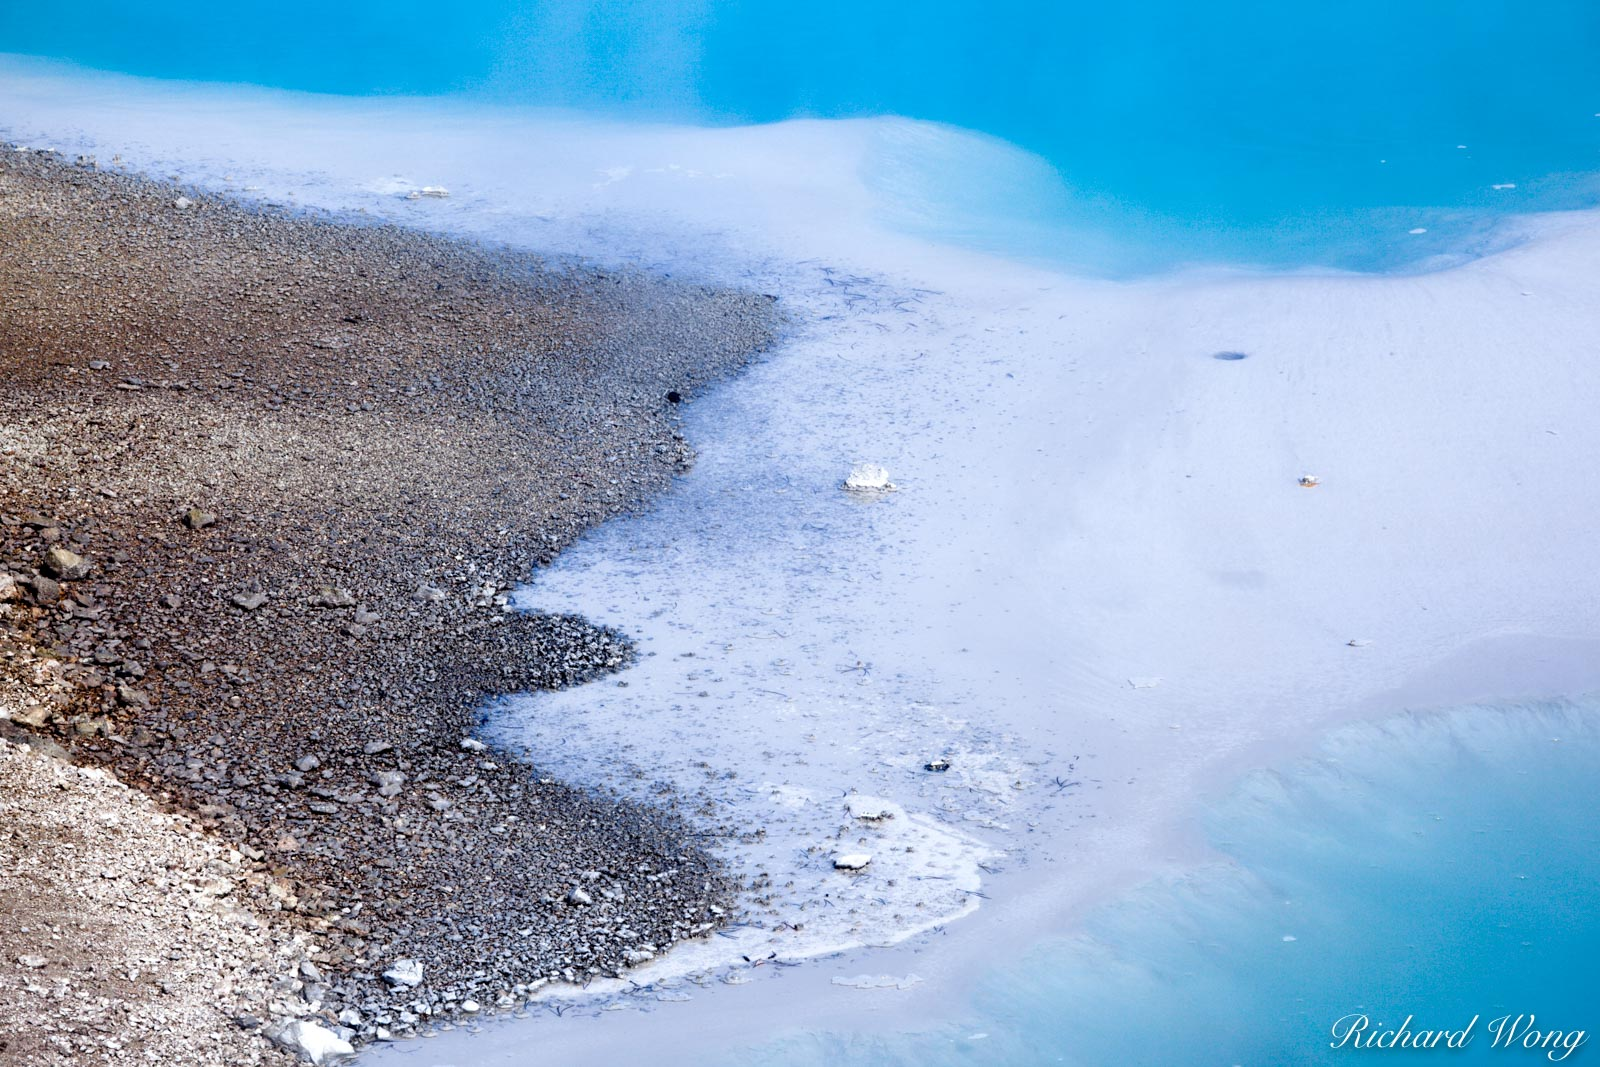 Colloidal Pool in Porcelain Basin at Norris Geyser Basin, Yellowstone National Park, Wyoming, photo, photo